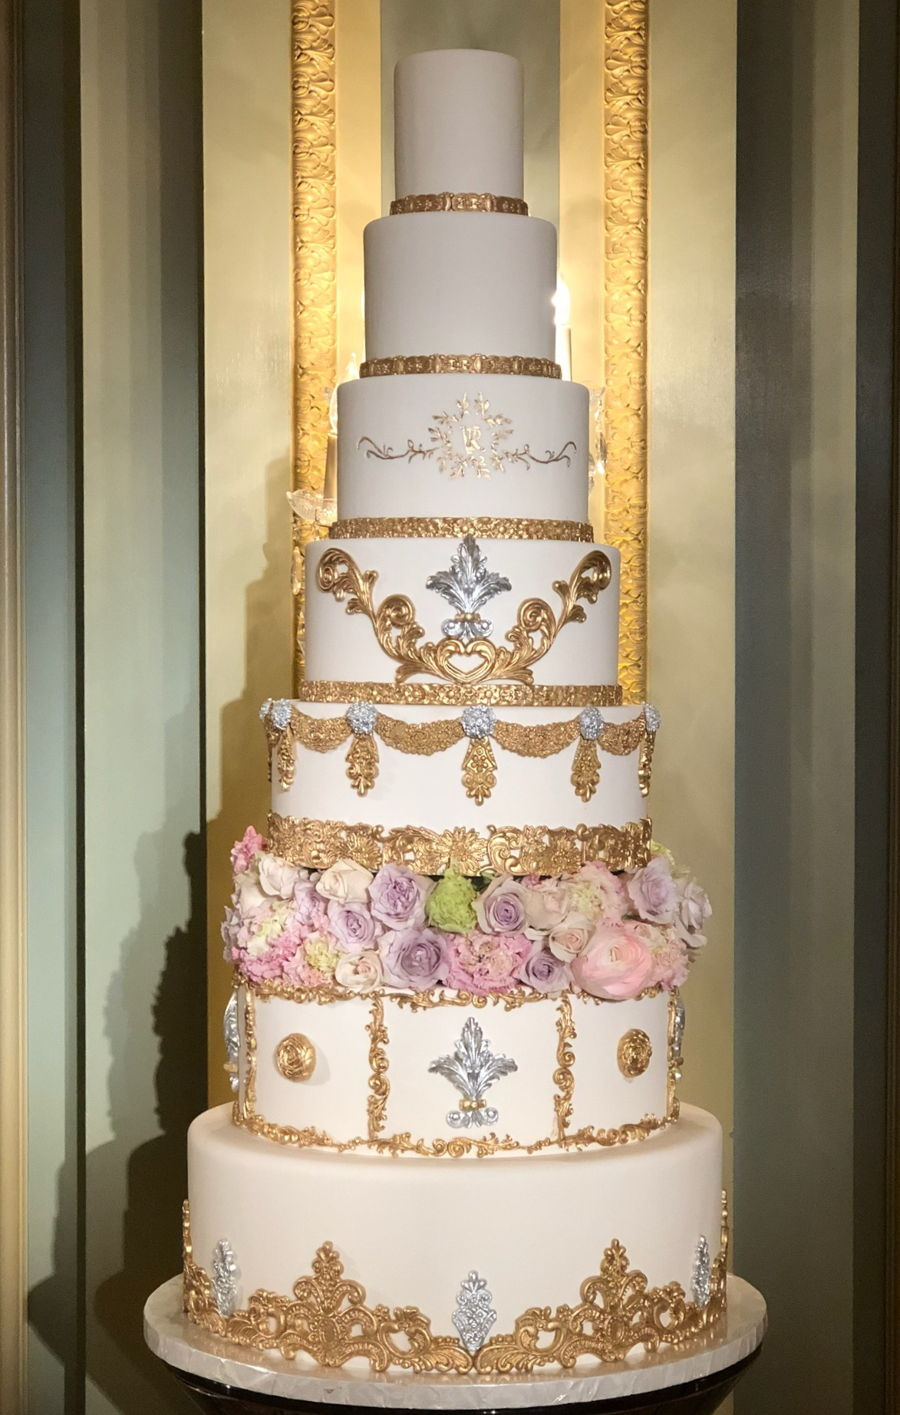 8 Tiers Wedding Cake With Gold And Silver Decorations